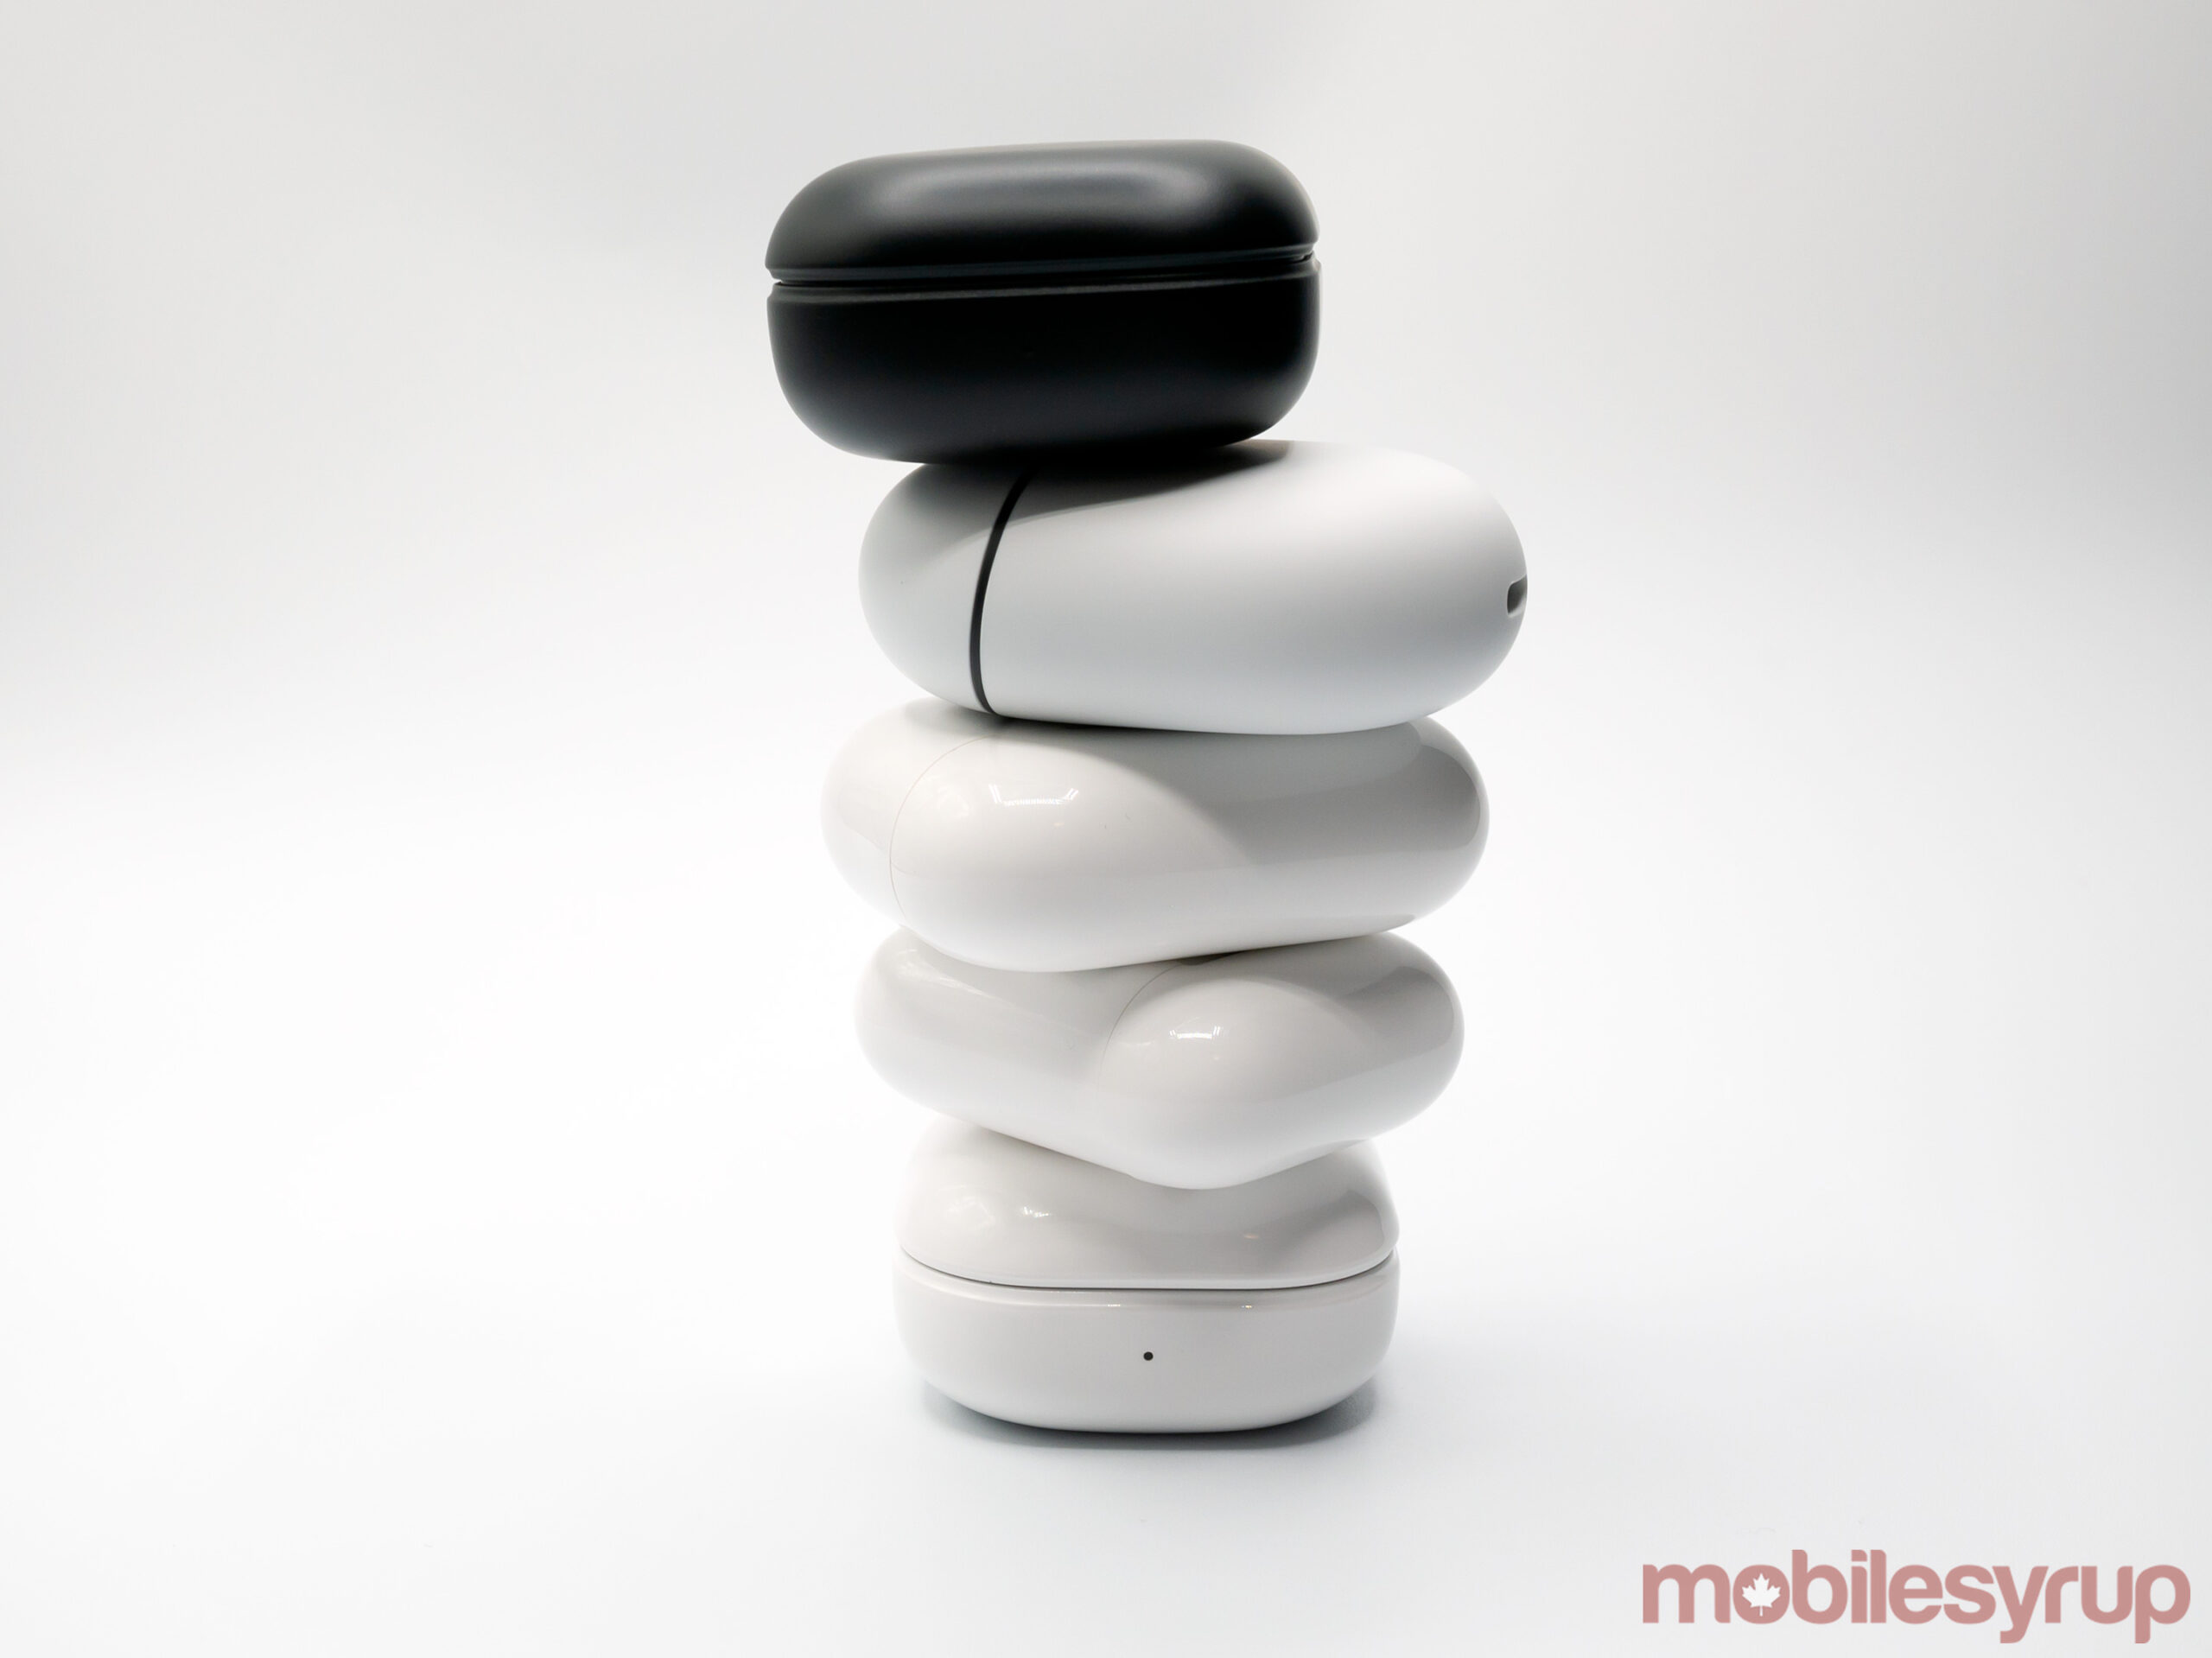 All of the earbuds stacked